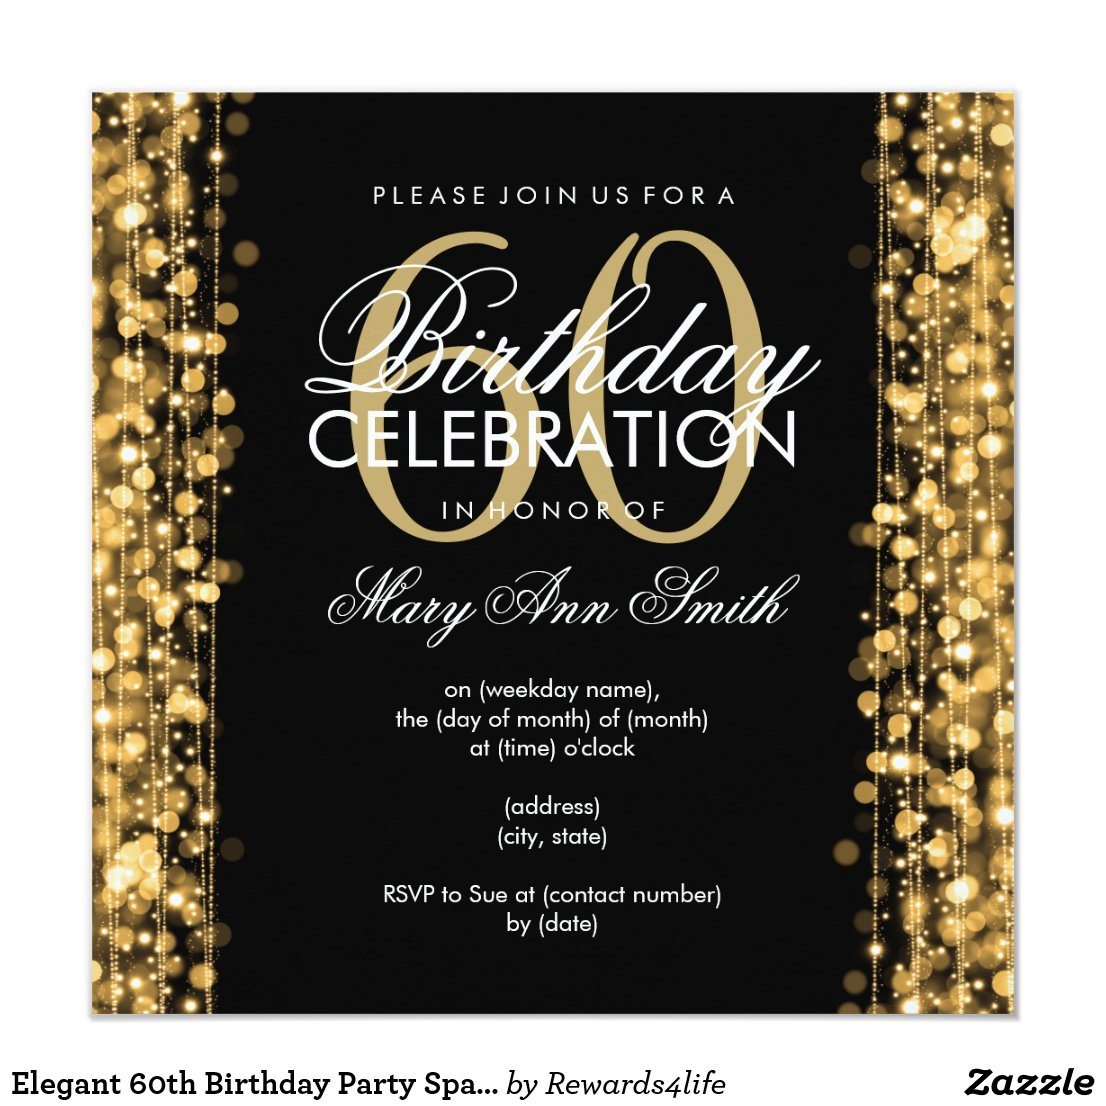 Elegant 60th Birthday Party Card